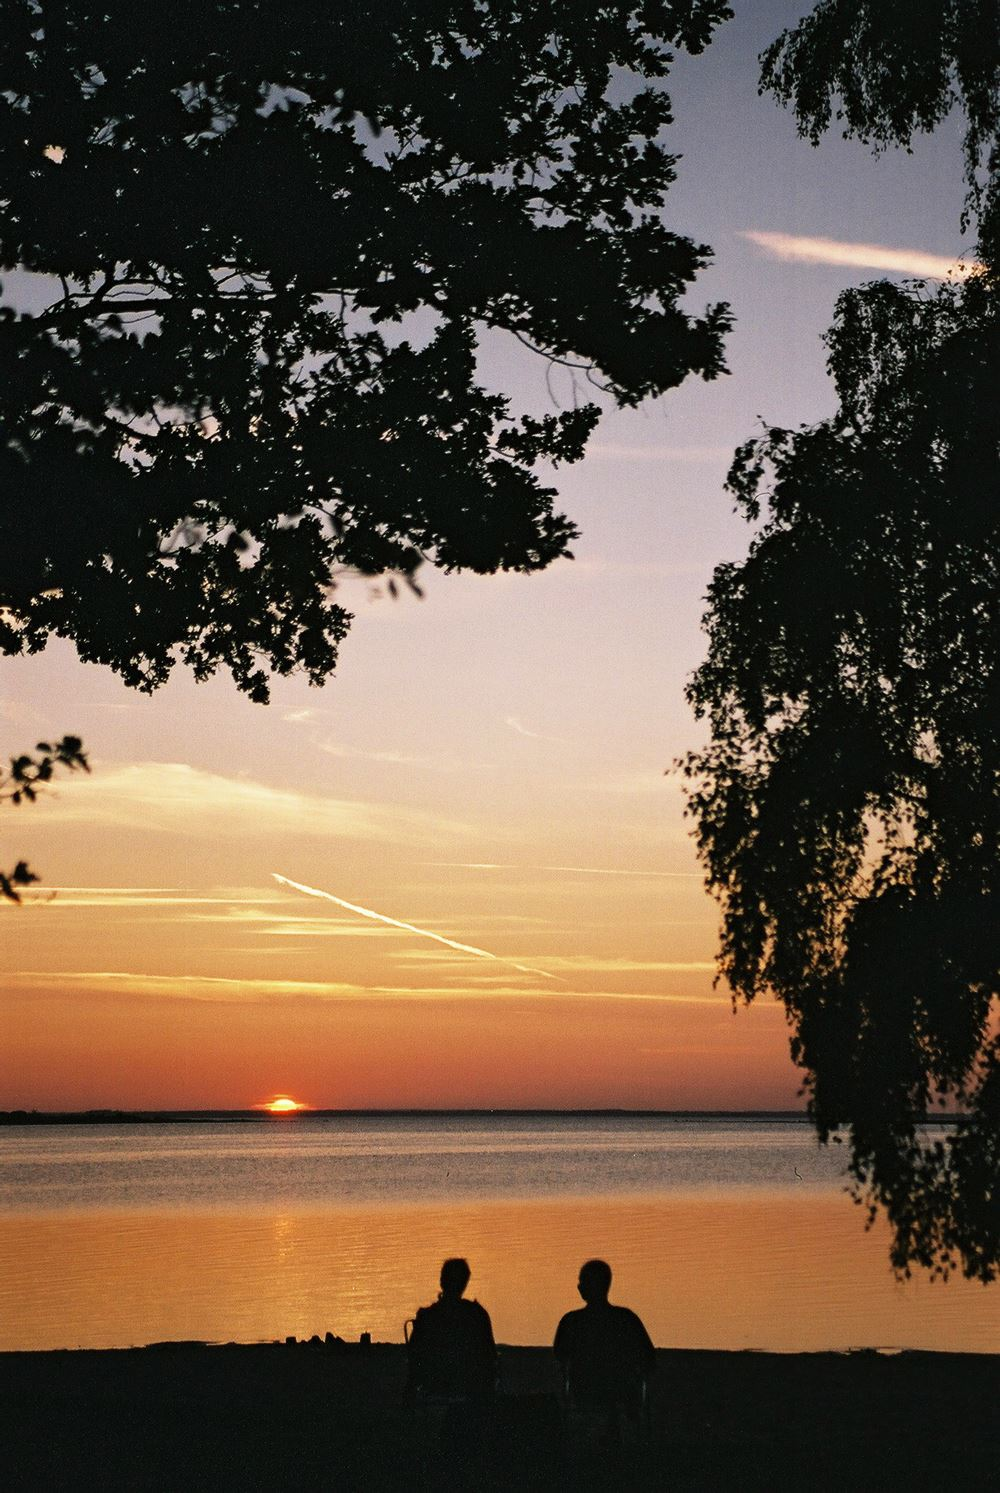 Stay at Kronocamping Saxnäs during the Öland Harvest Festival